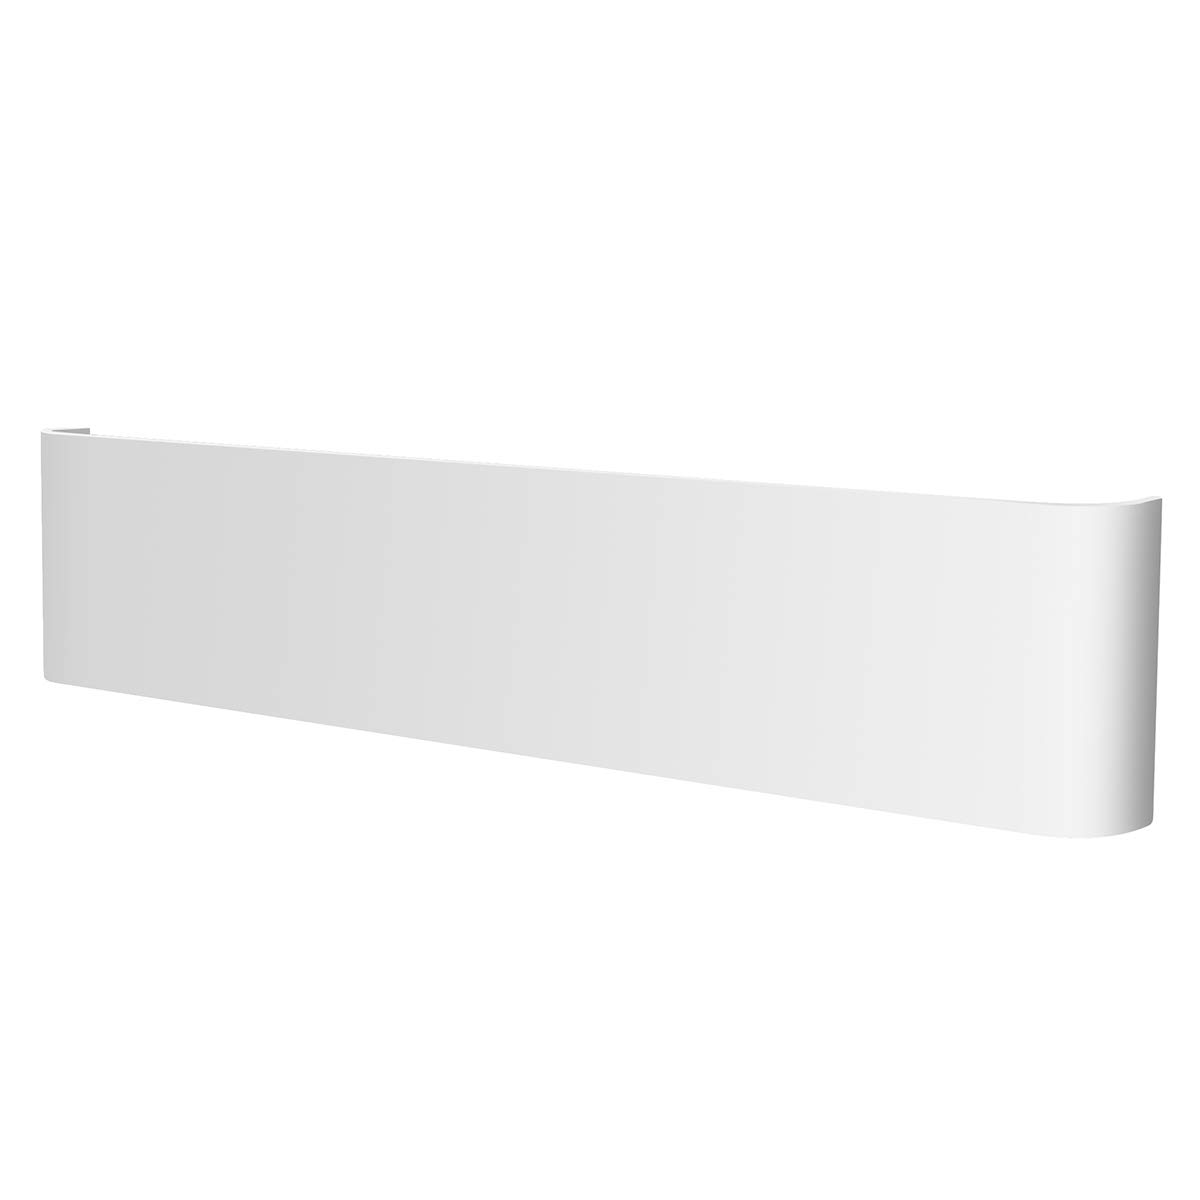 Applique Murale LED Kimjo, 14W Blanc Froid 6000K Up Down Murale Moderne Lampe Interieur 1500lm 180° Angle de Faisceau, IP44 Imperméable Lampe de Chevet Escaliers Salle de Bains Non Réglable [Classe énergétique A+]